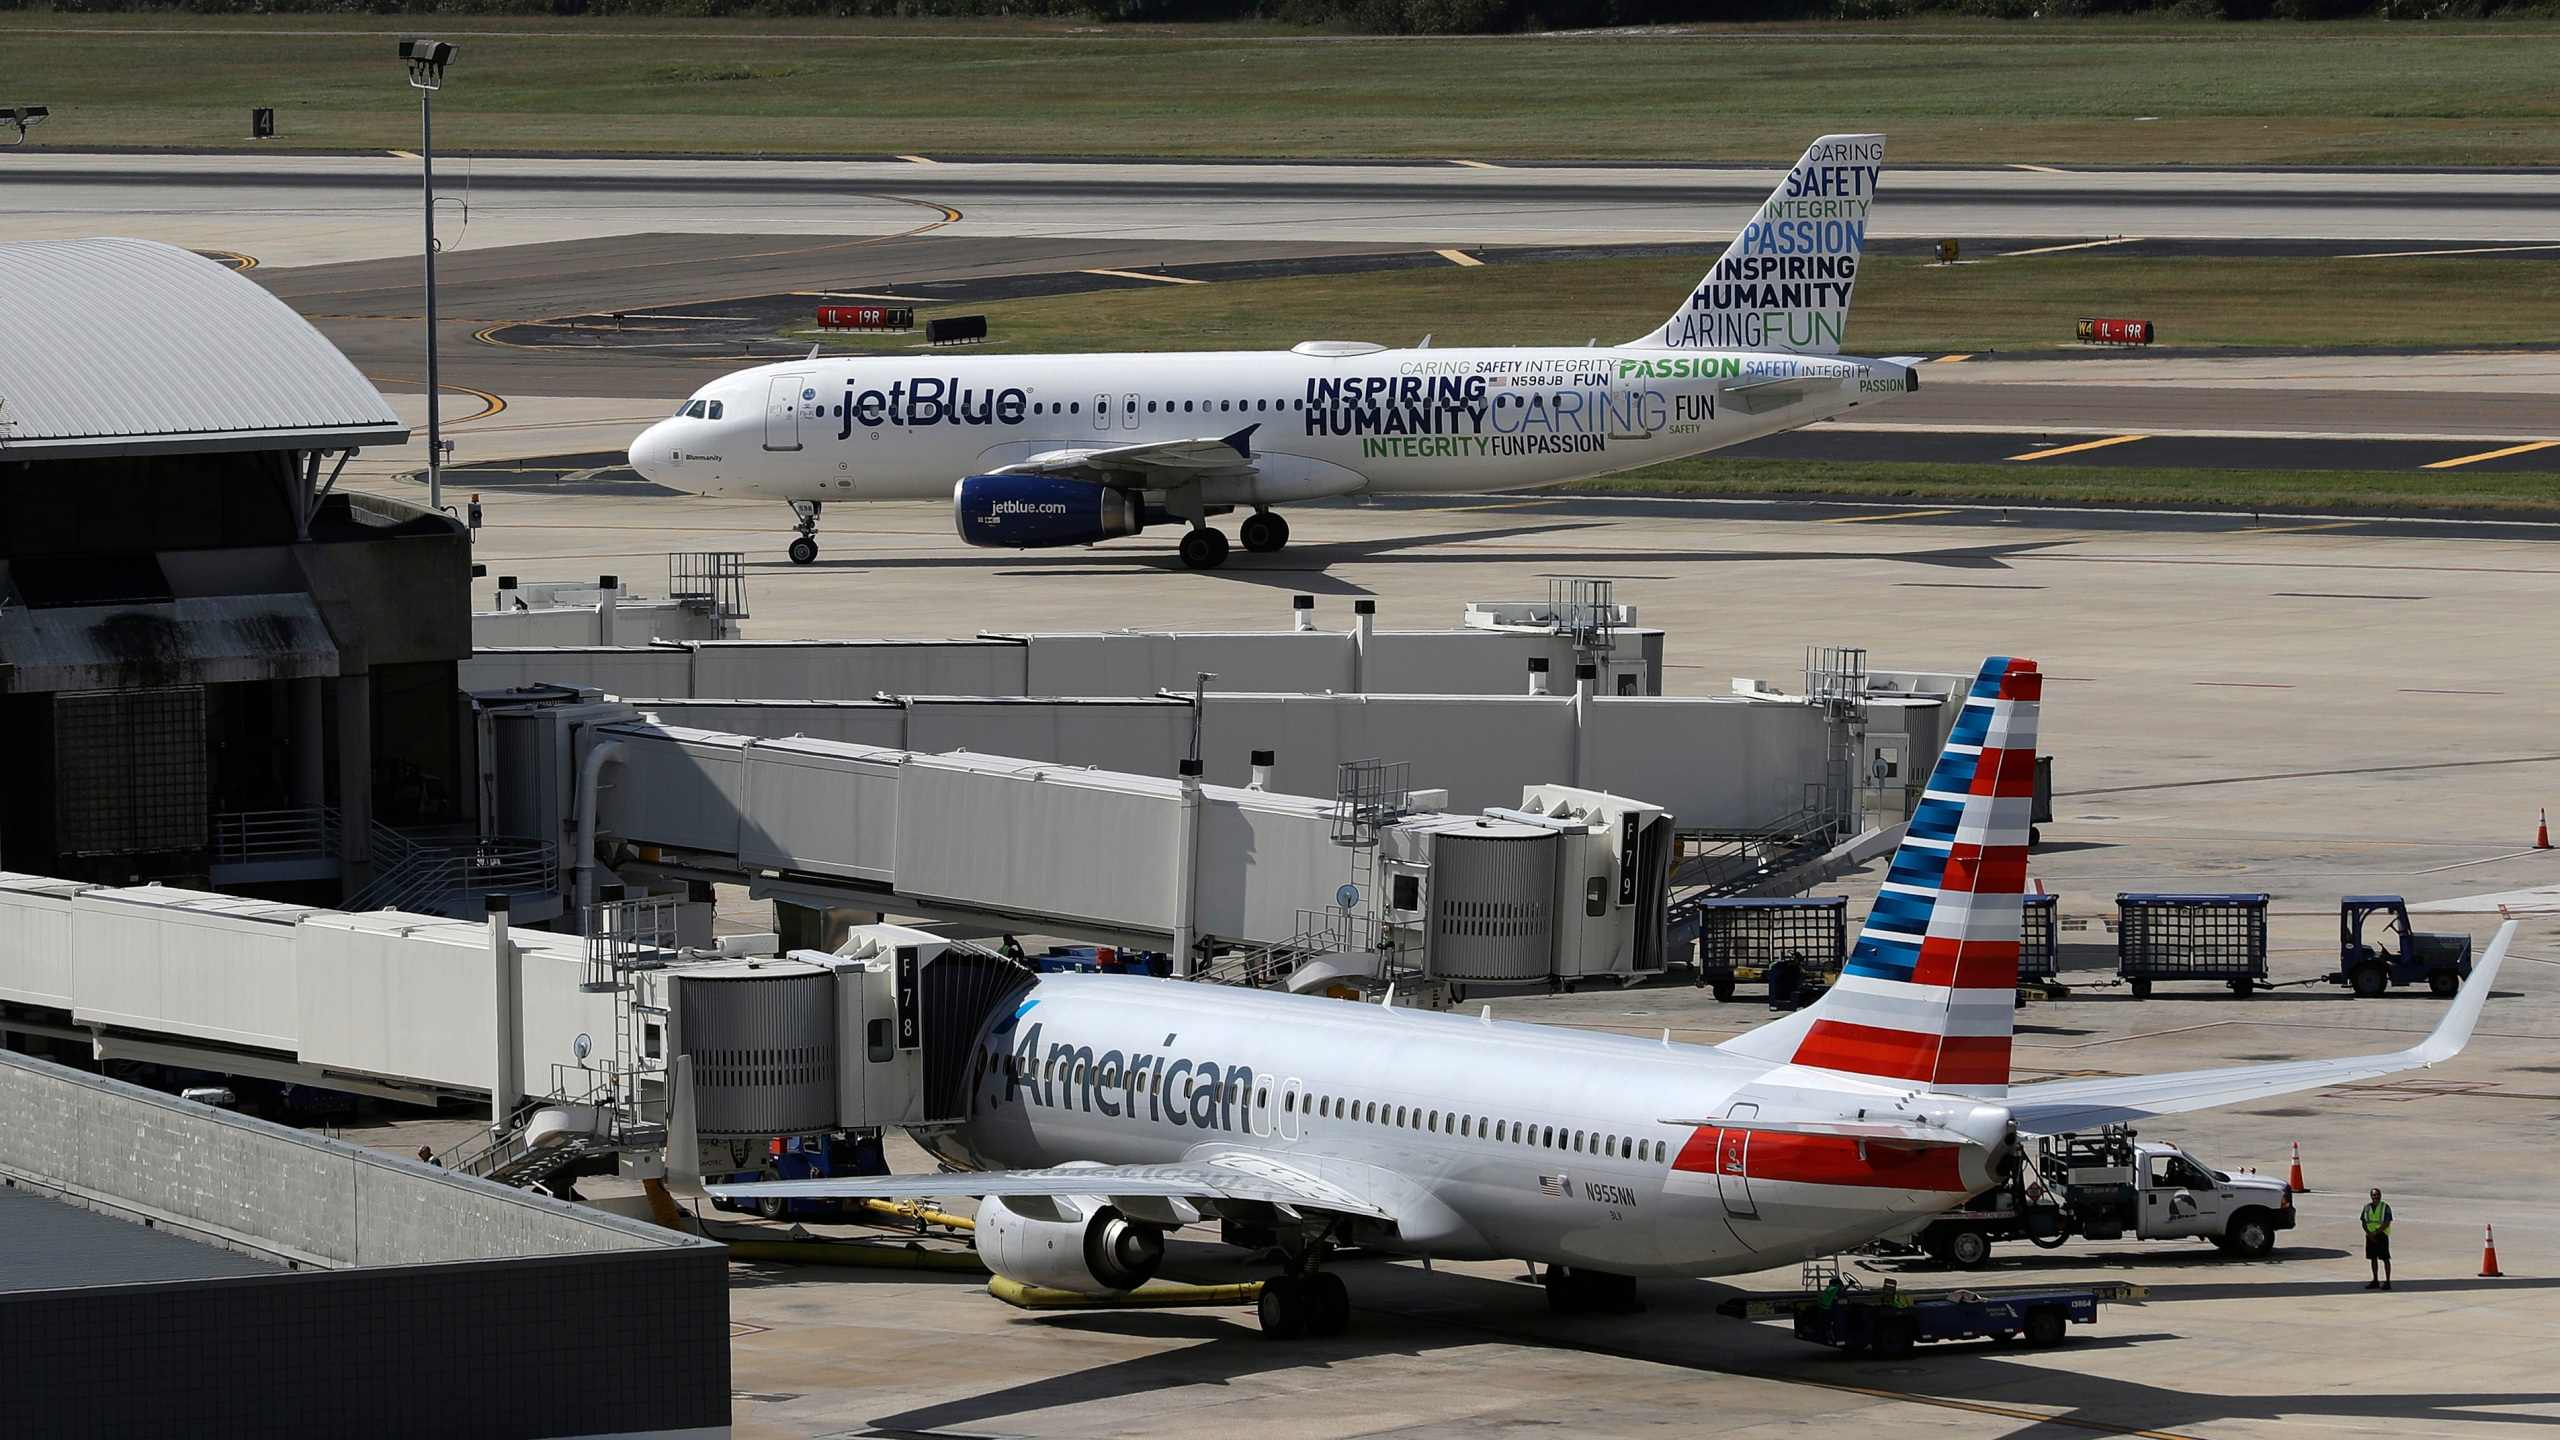 A JetBlue Airbus A320 taxis to a gate Wednesday, Oct. 26, 2016, after landing as an American Airlines jet is seen parked at its gate at Tampa International Airport in Tampa, Fla. (AP Photo/Chris O'Meara, File)